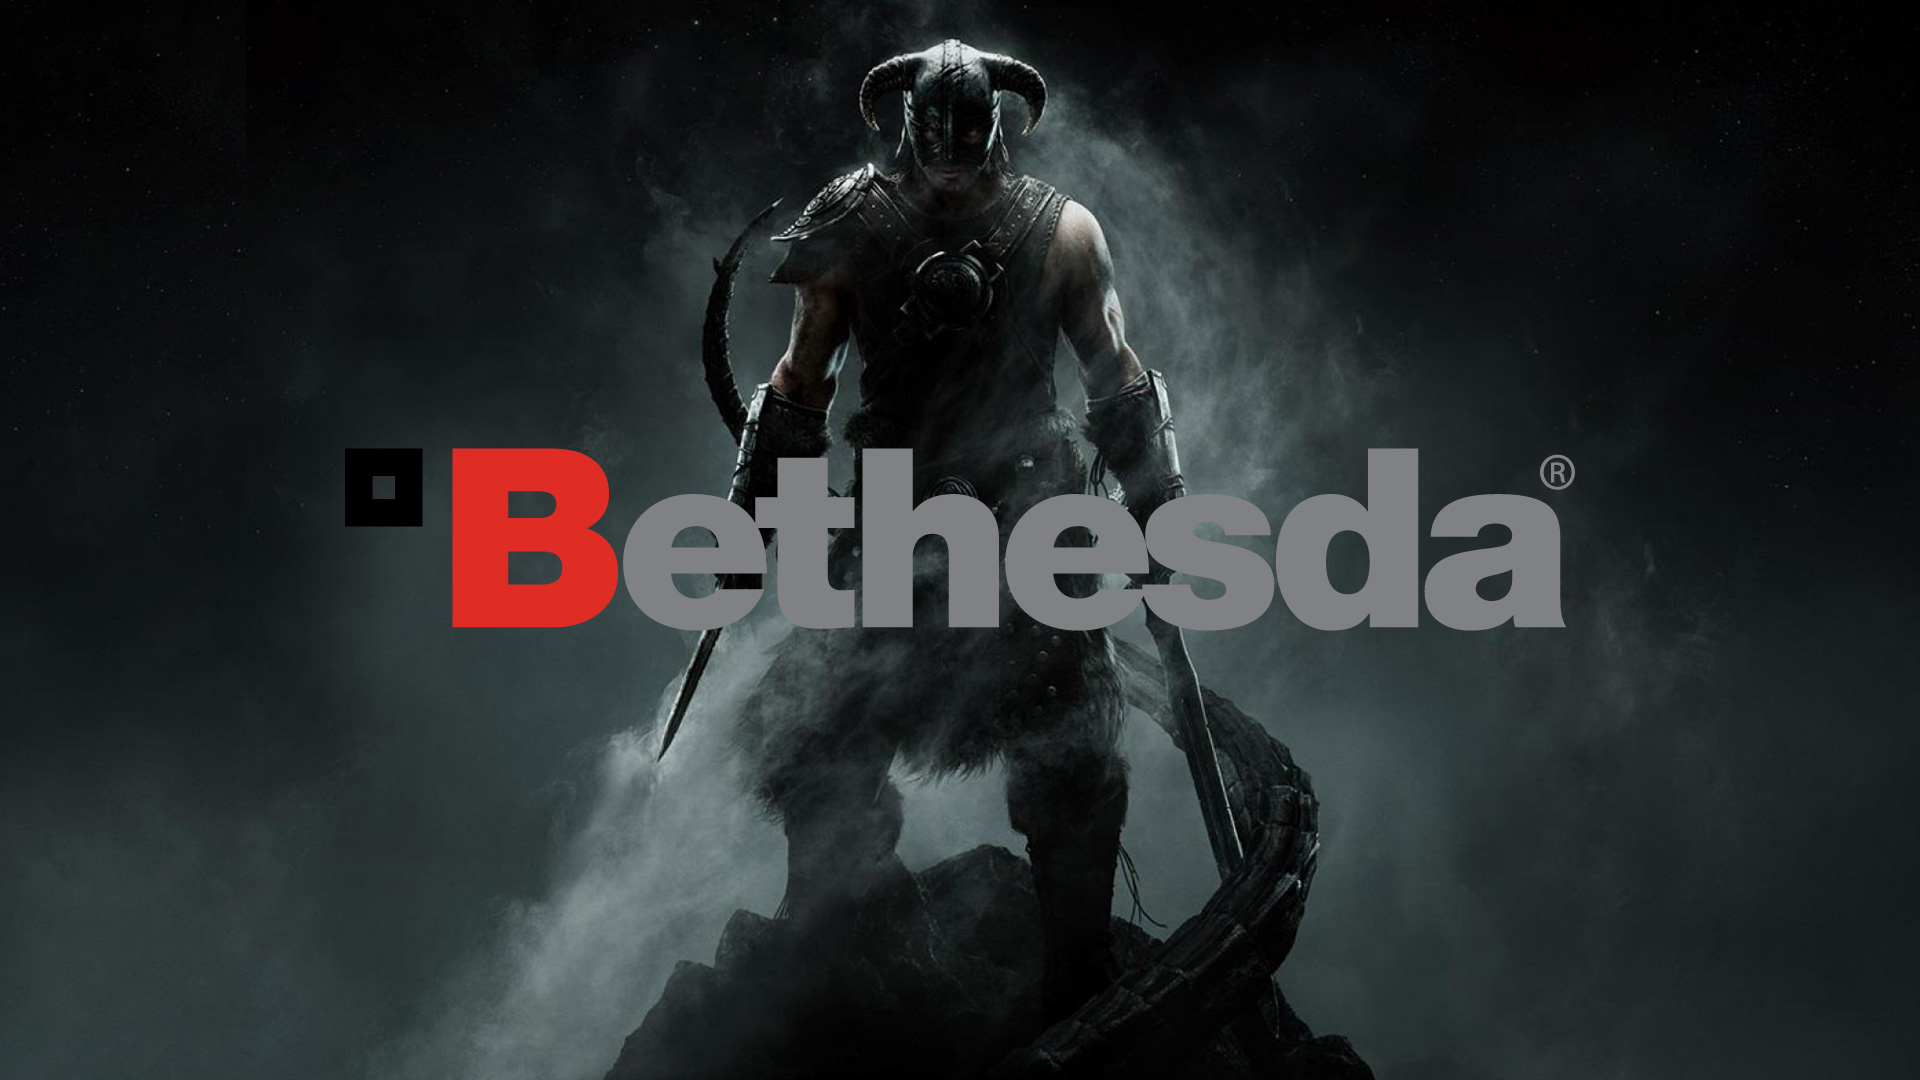 Bethesda Reveals Their Close Working Relationship With Nintendo And Teases More To Come